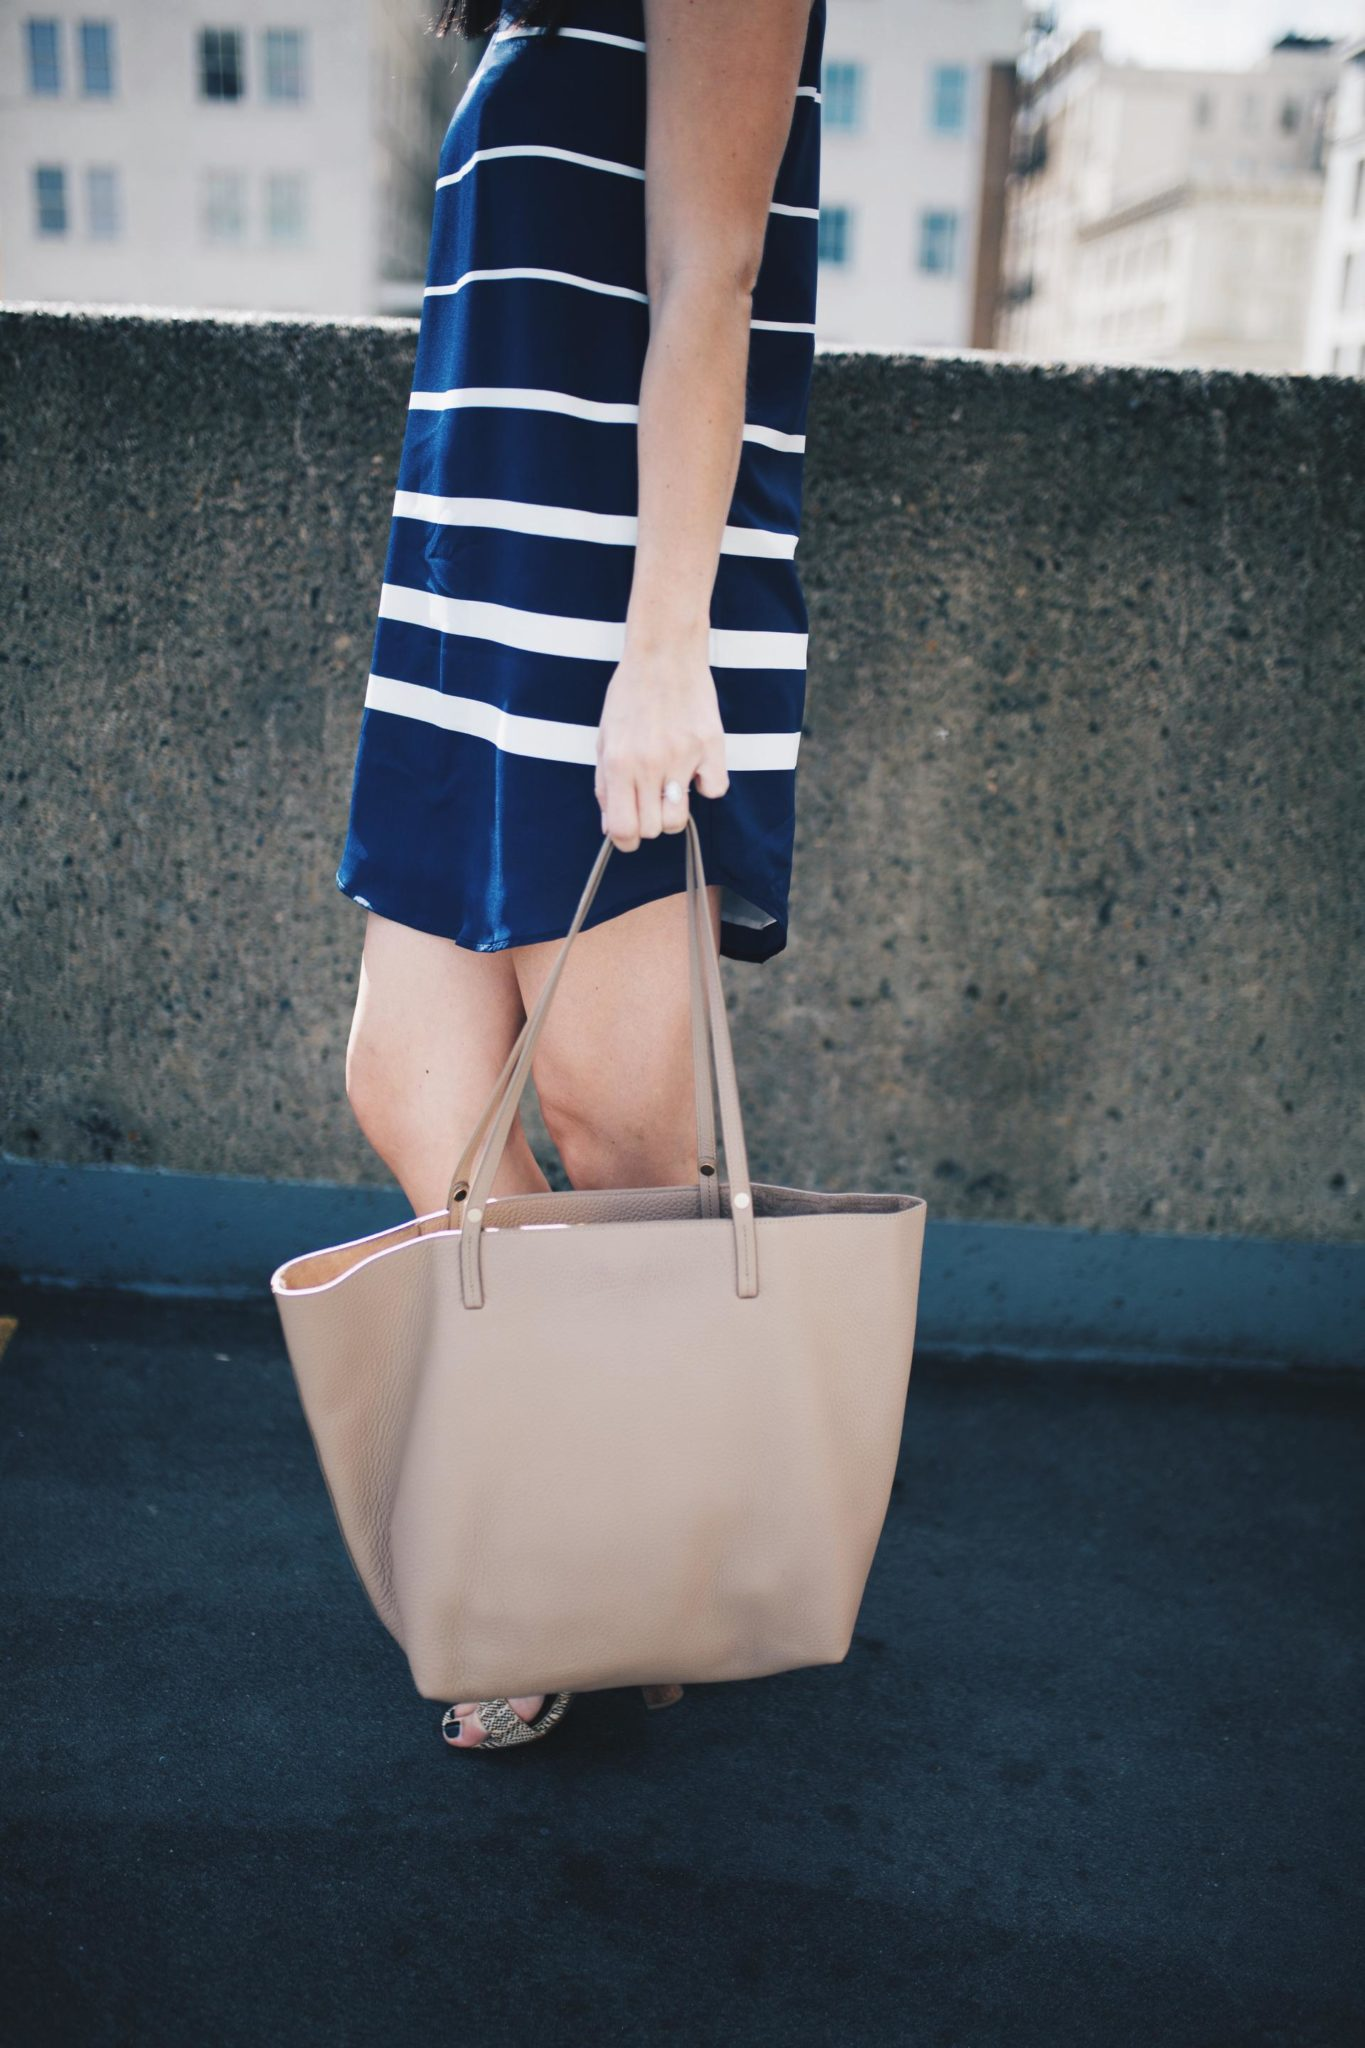 Striped Dress | summer fashion tips | summer outfit ideas | summer style tips | what to wear for summer | warm weather fashion | fashion for summer | style tips for summer | outfit ideas for summer || Dressed to Kill